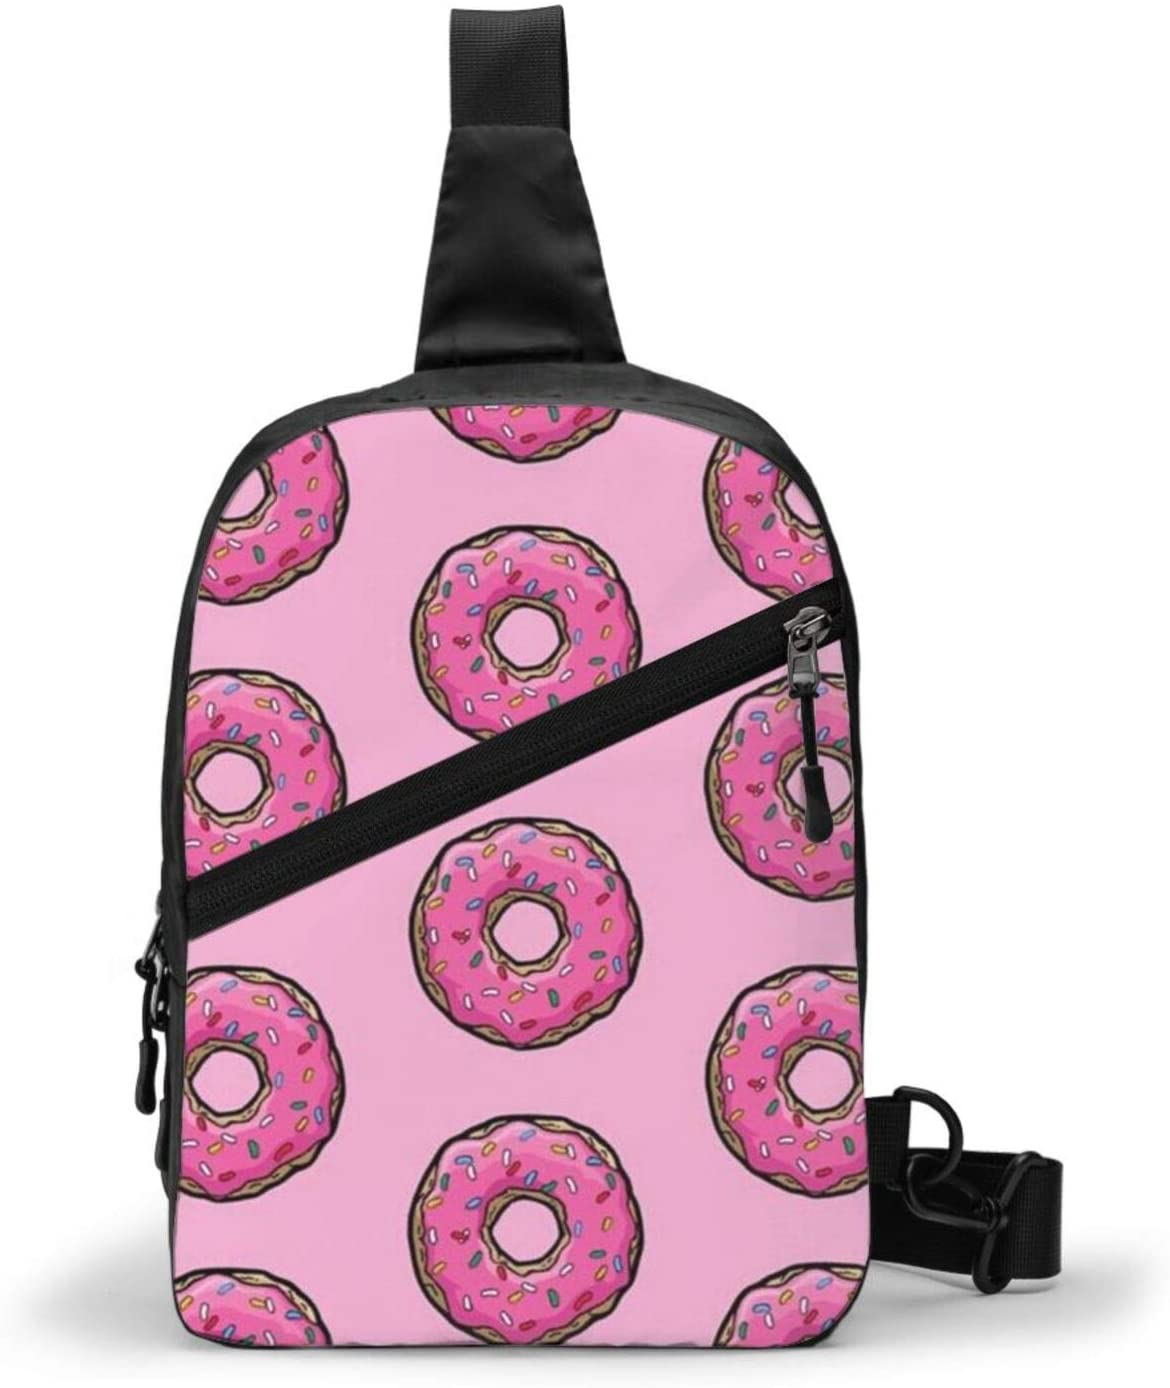 Neddelo Pink Donut Crossbody Bag,Portable Chest Bags,Folding Chest Bag, Men's and Women Sling Bag for Travel,Hiking, Cycling,Camping